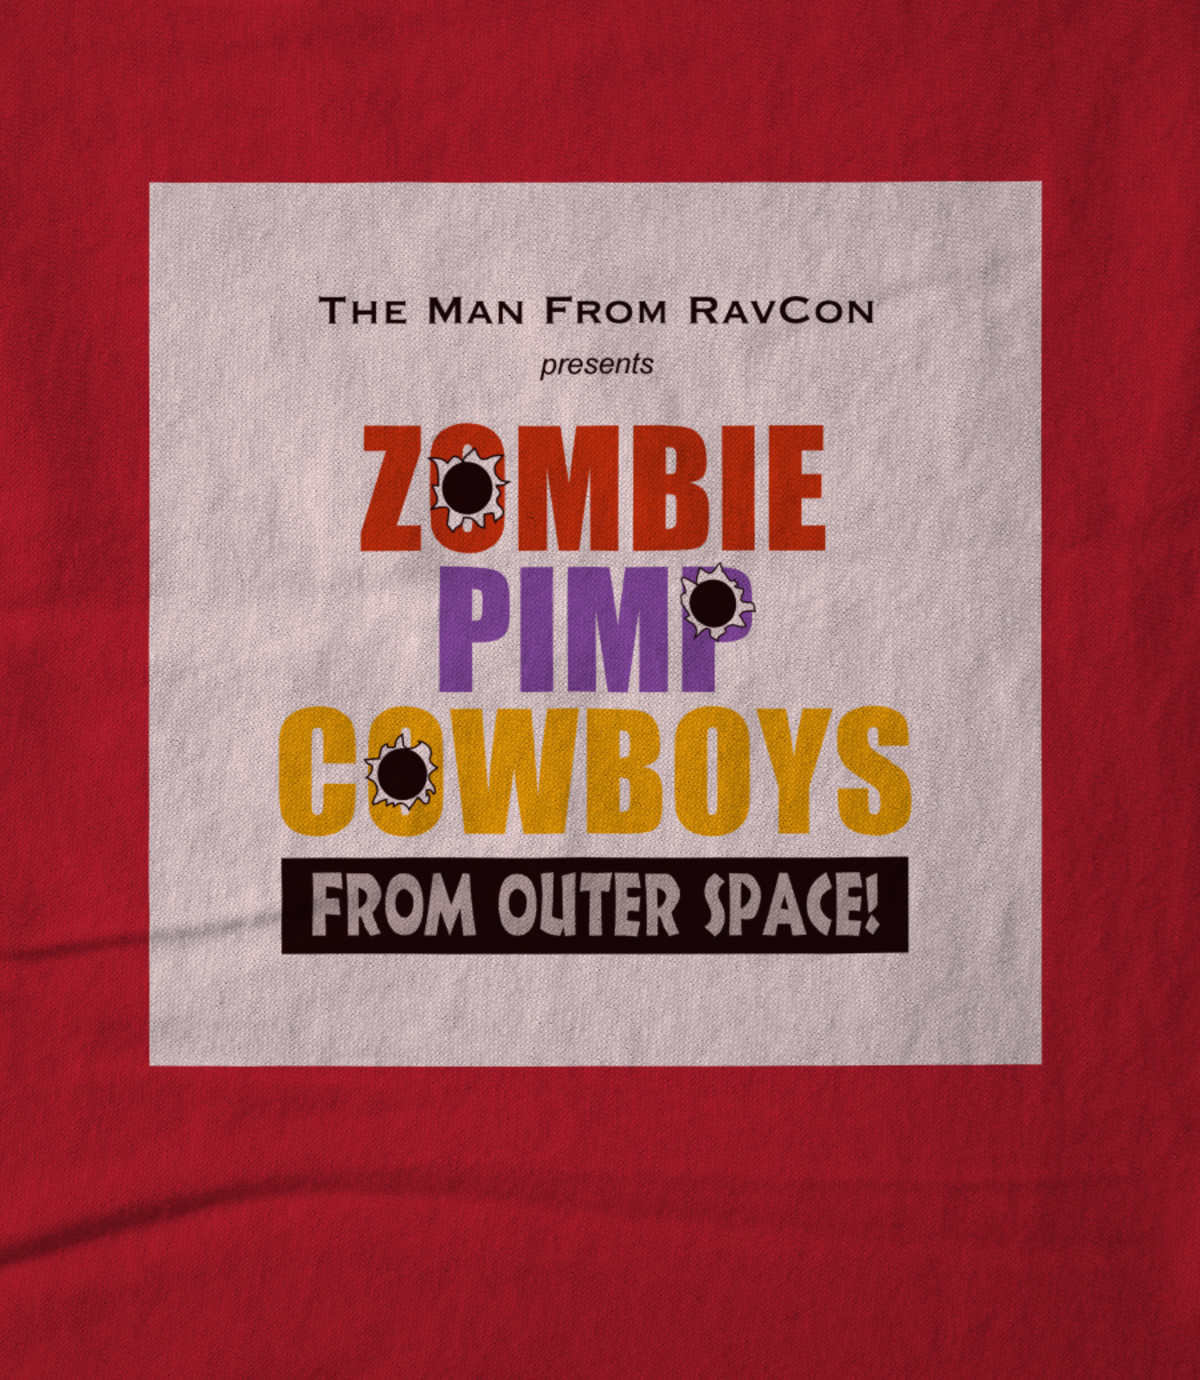 The man from ravcon zombie pimp cowboys 1486410022